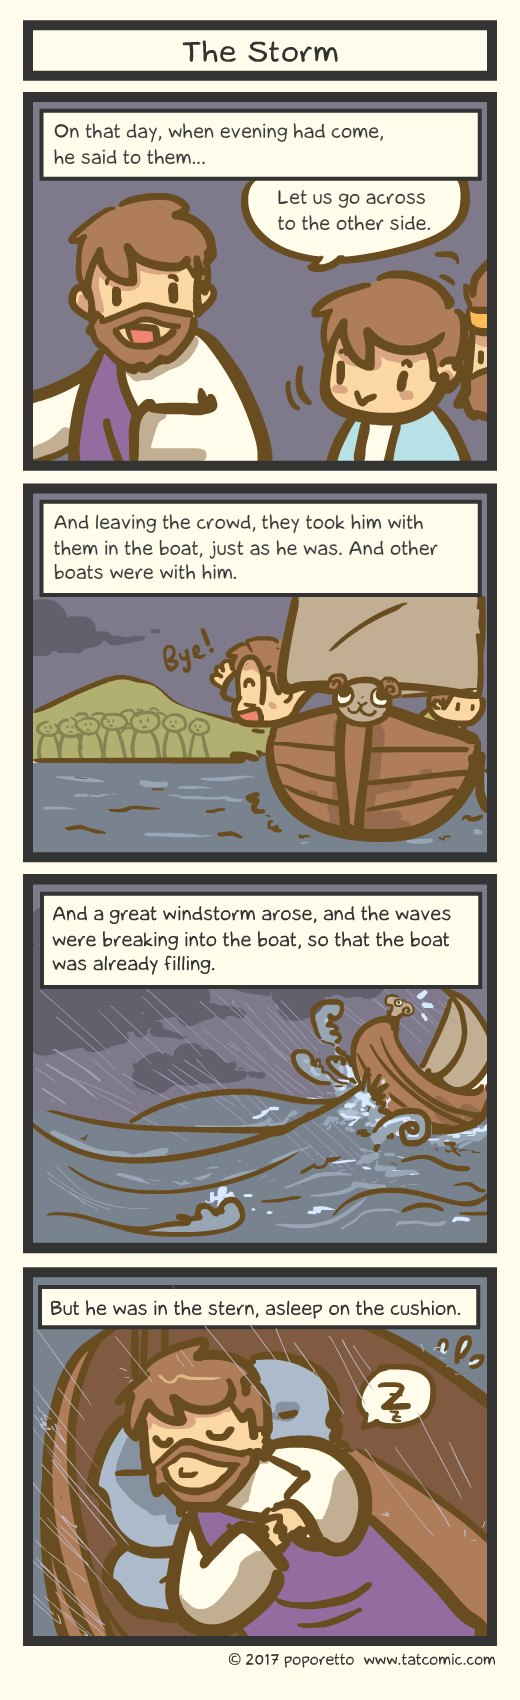 Gospel Christian comic strip jesus and his disciples went out to the sea and the storm caught up to them